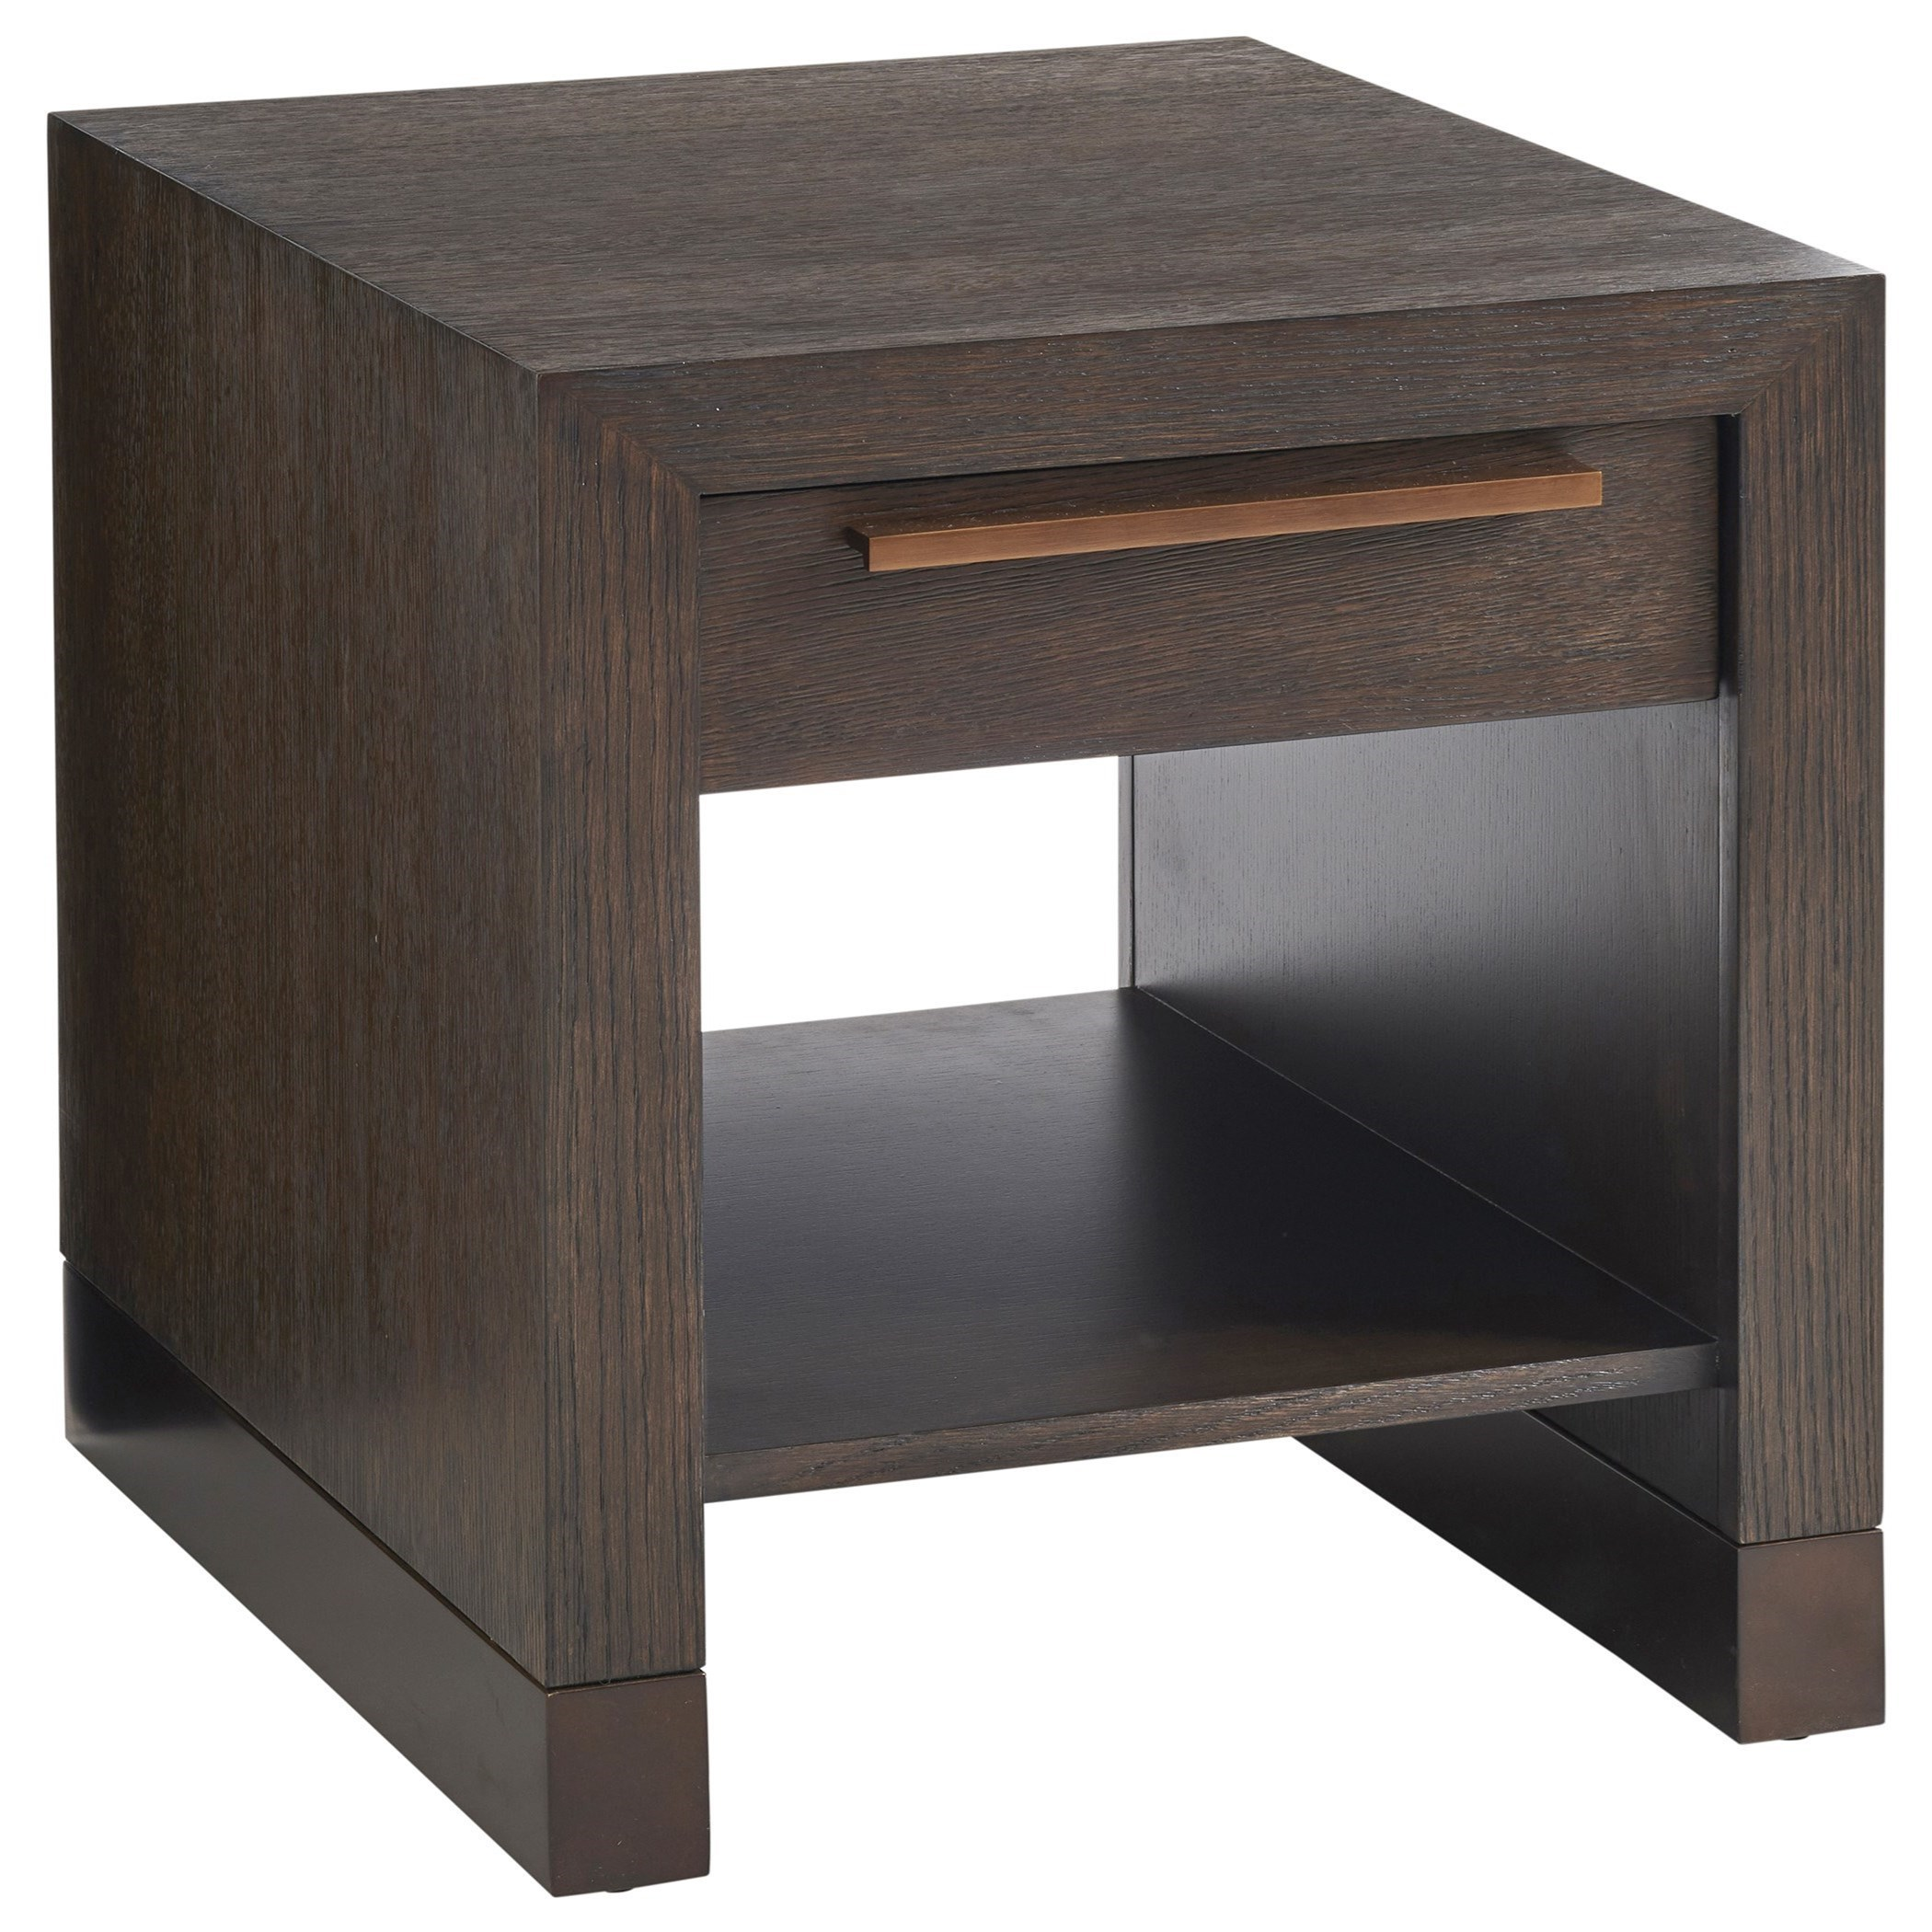 Heber End Table with Drawer and Shelf